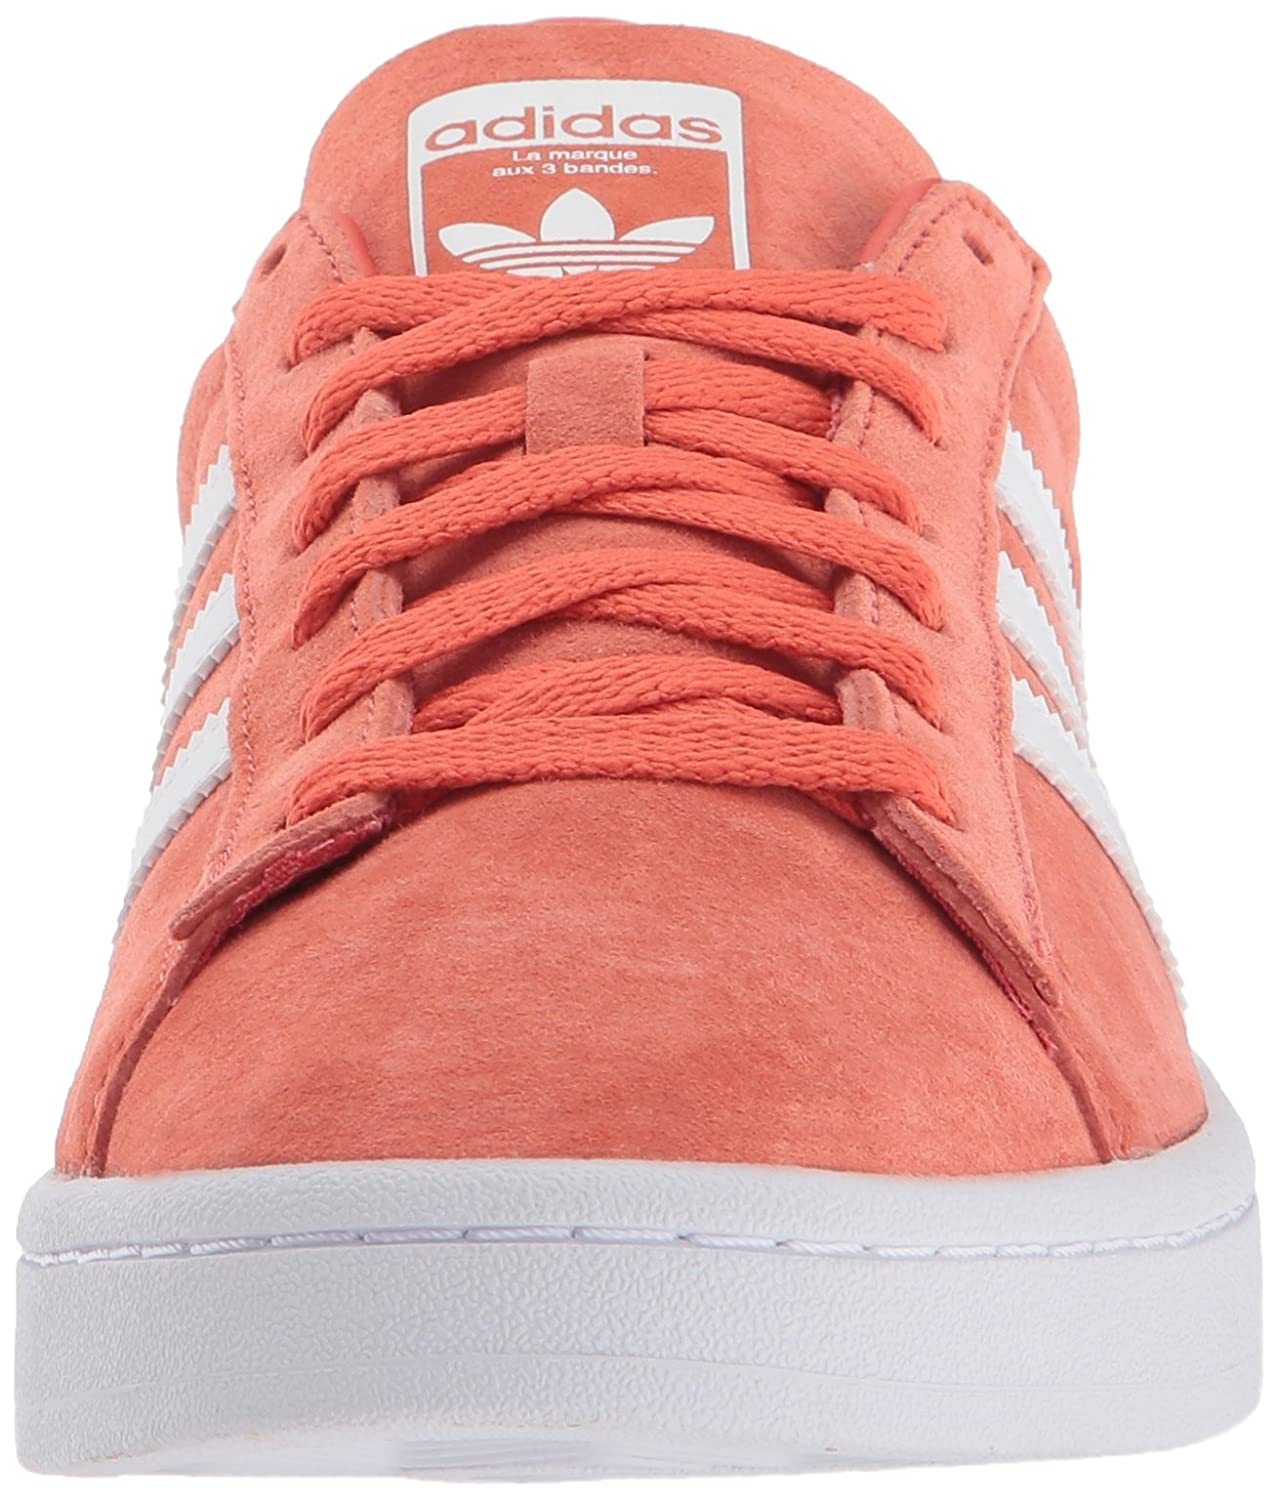 Adidas-Campus-Men-039-s-Casual-Fashion-Sneakers-Retro-Athletic-Shoes thumbnail 57